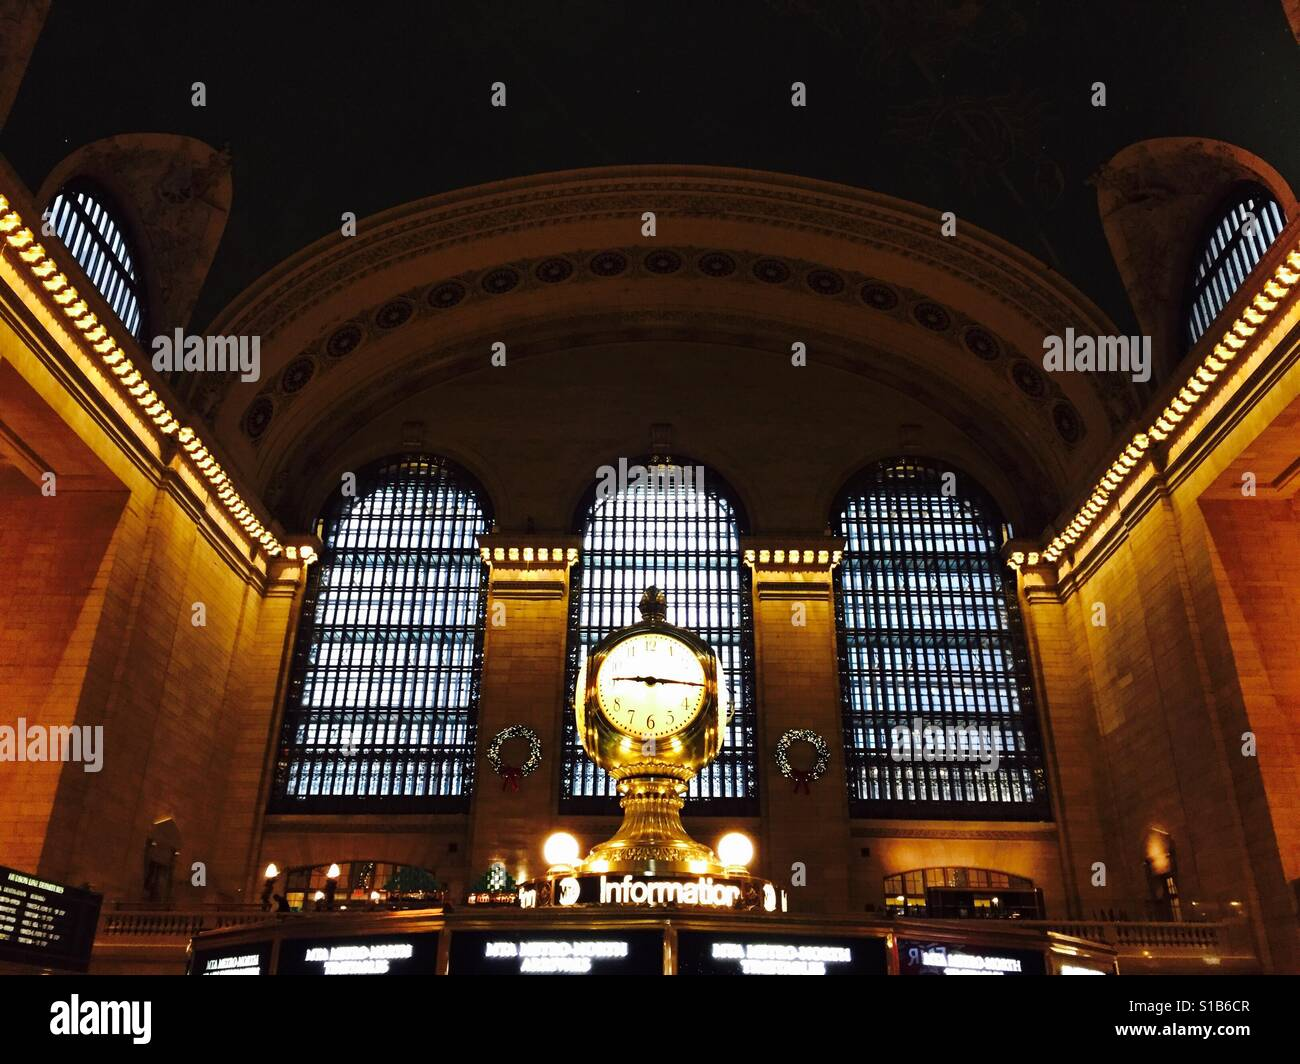 Grand Central Station, New York - Stock Image